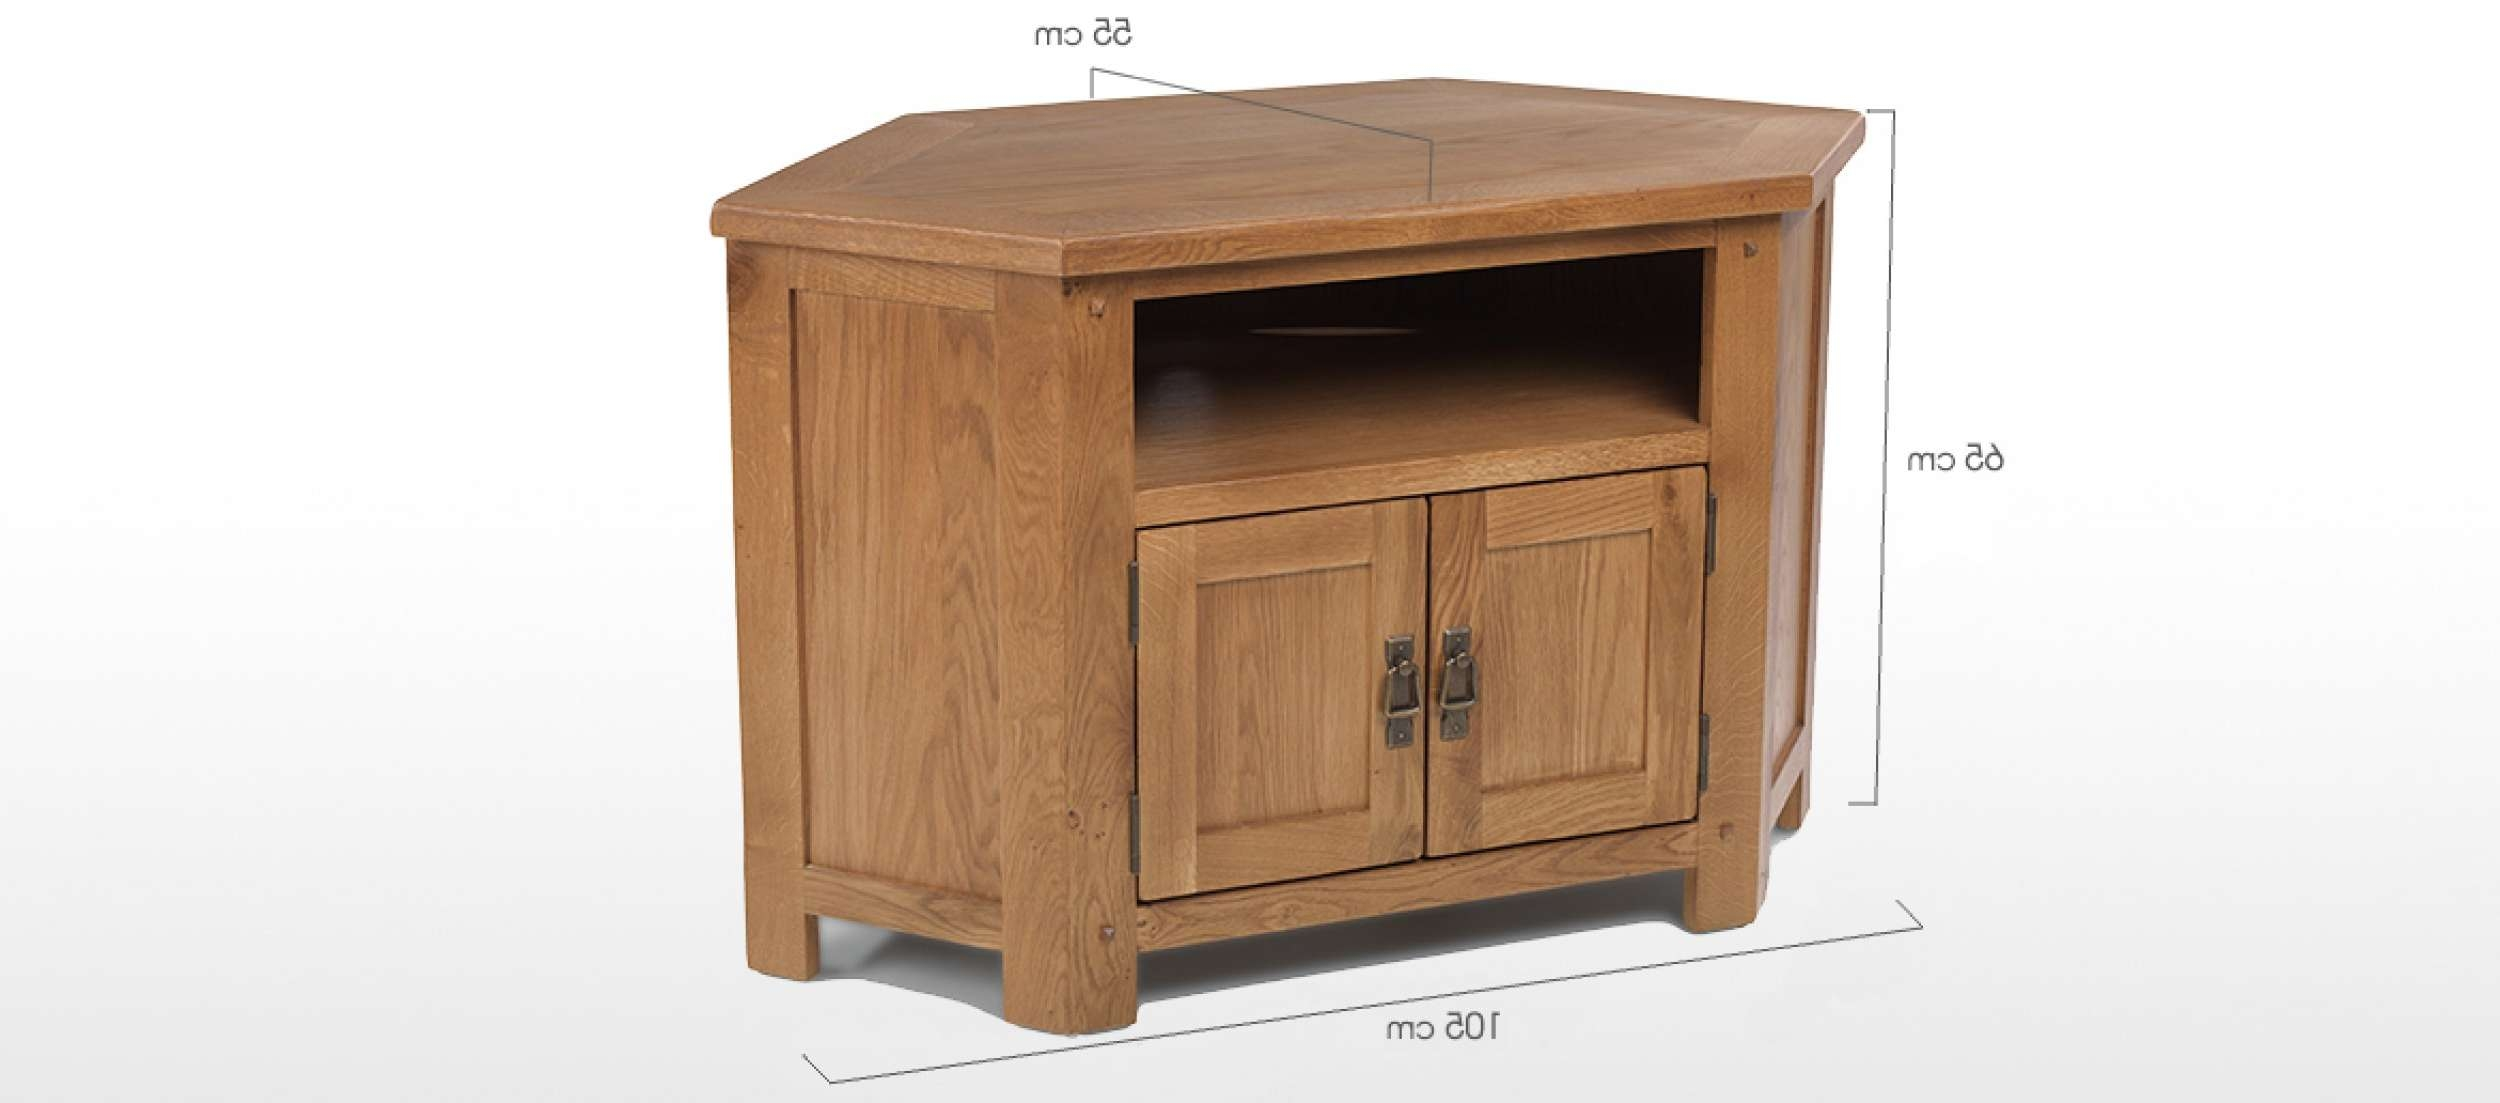 Rustic Oak Corner Tv Cabinet | Quercus Living Regarding Rustic Corner Tv Cabinets (View 17 of 20)